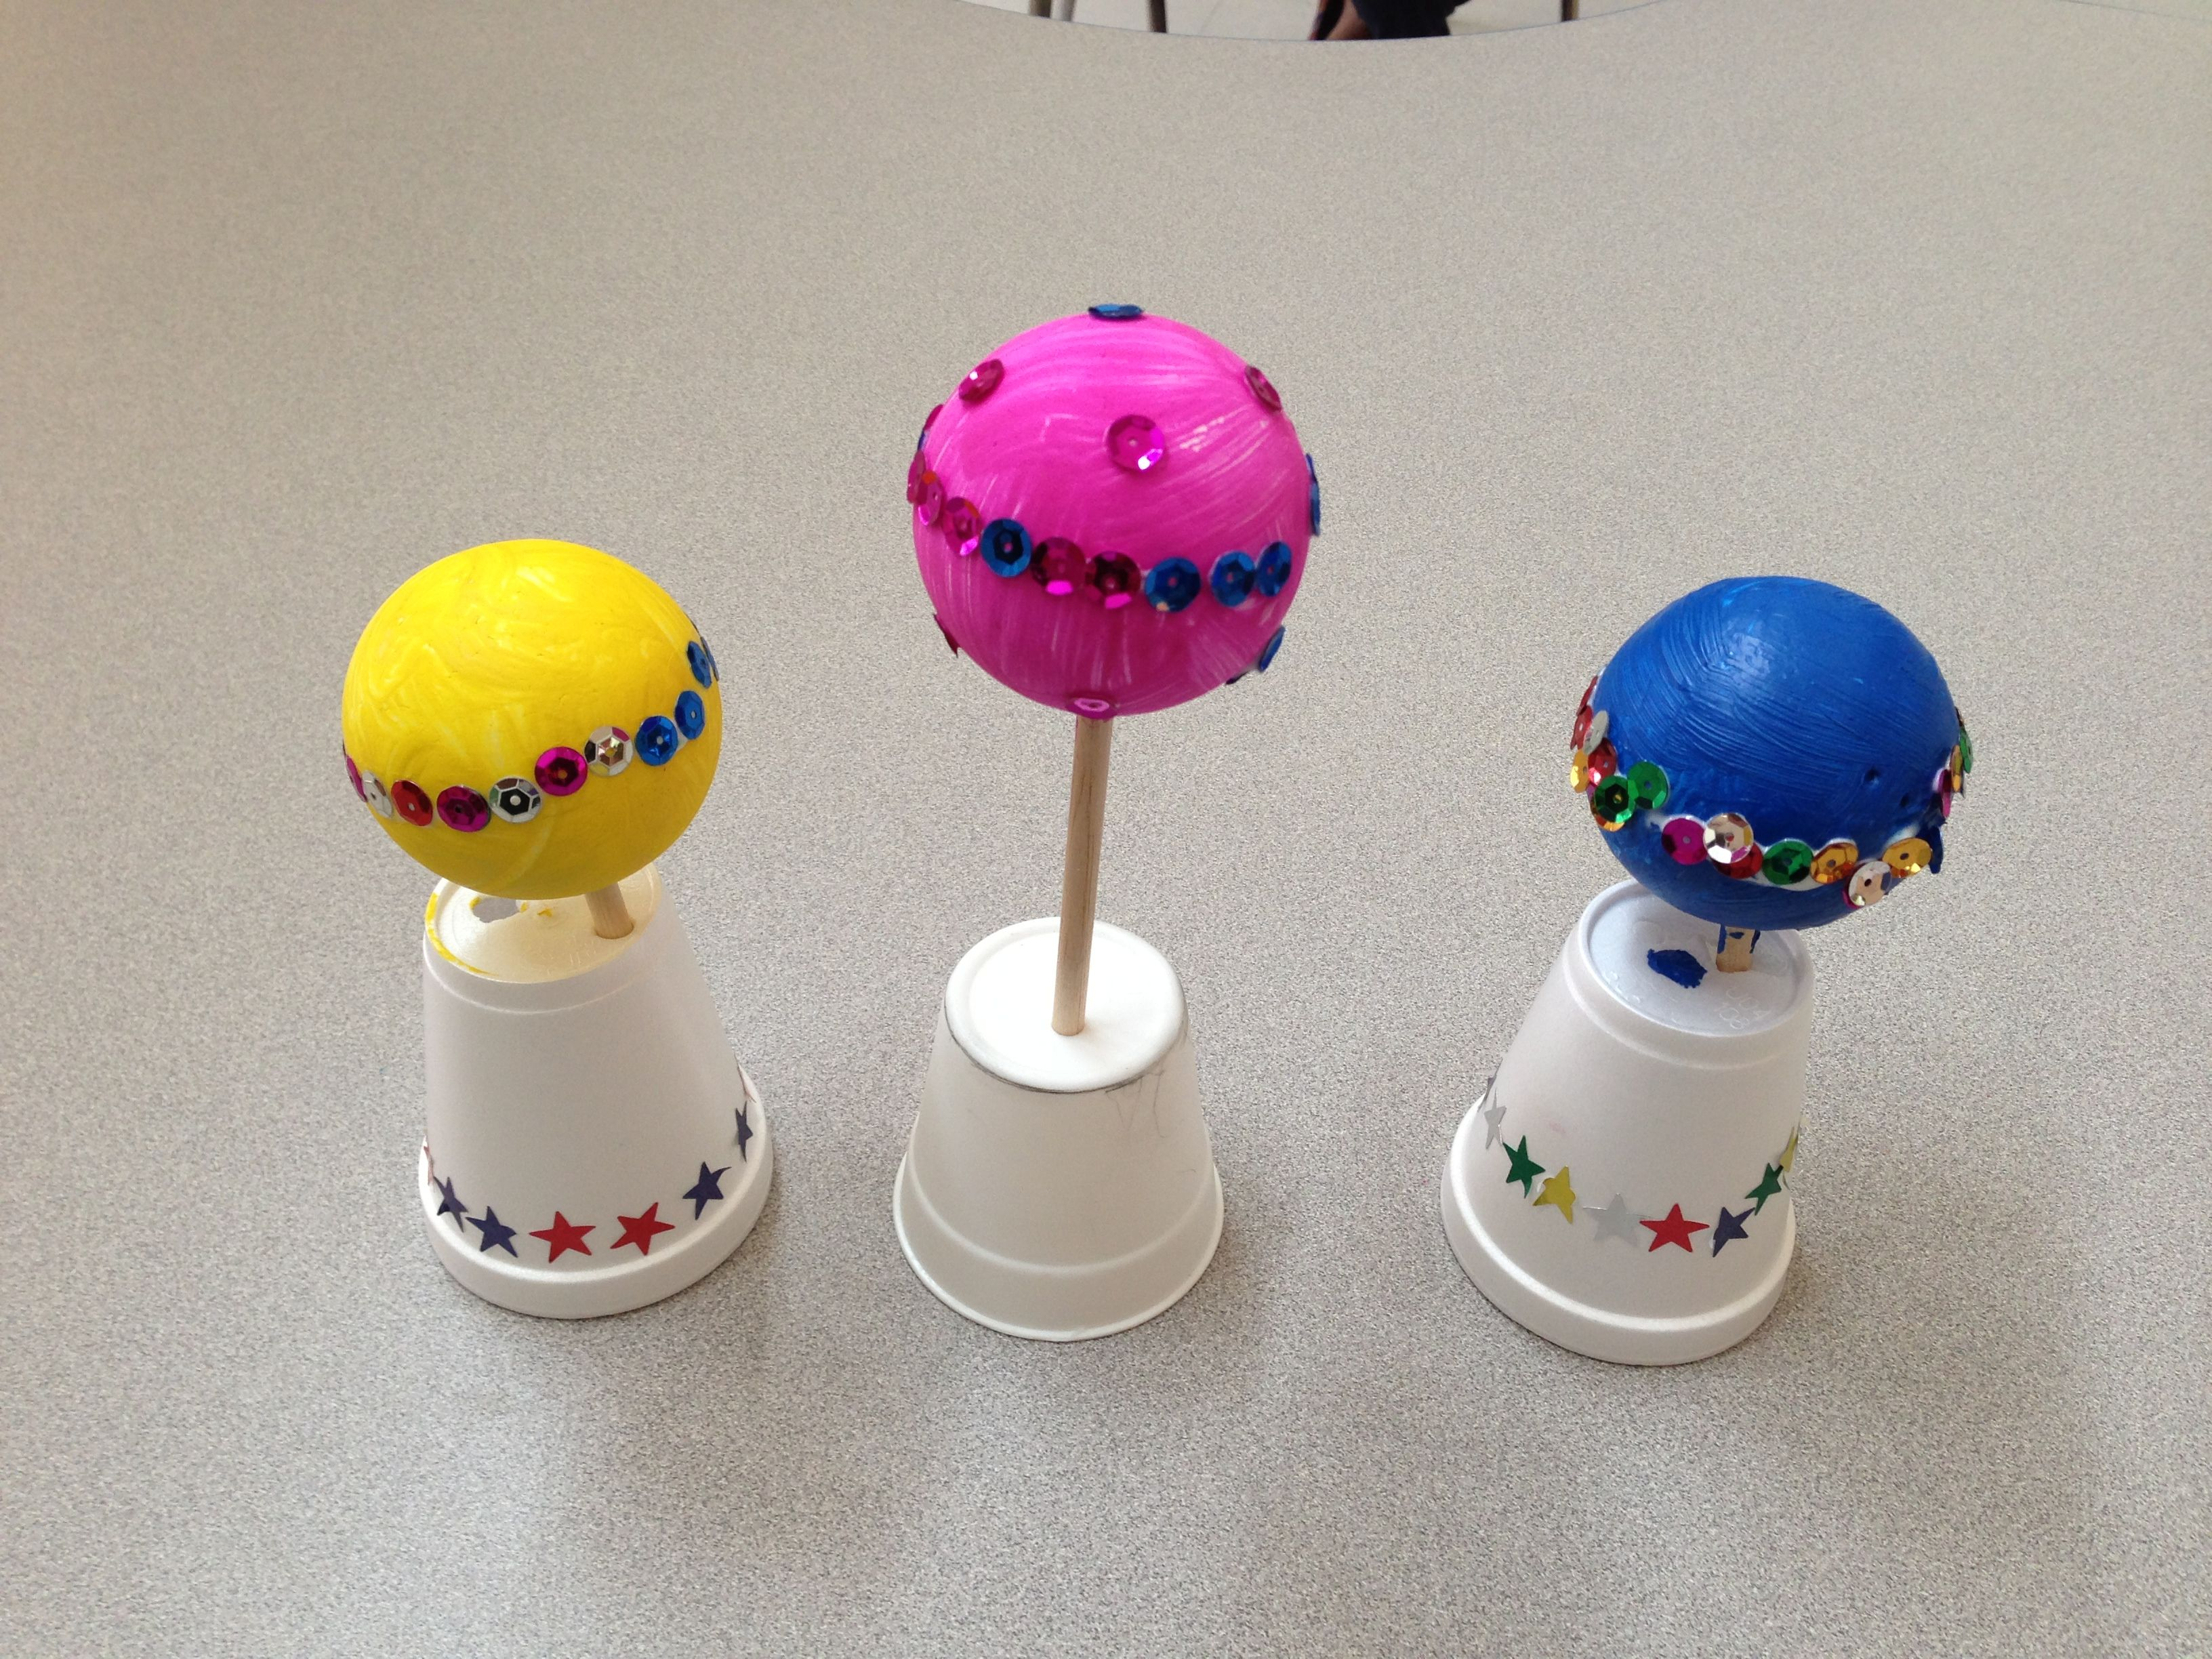 Outer Space theme craft, planets made from styrofoam balls and candy apple  wooden sticks paint